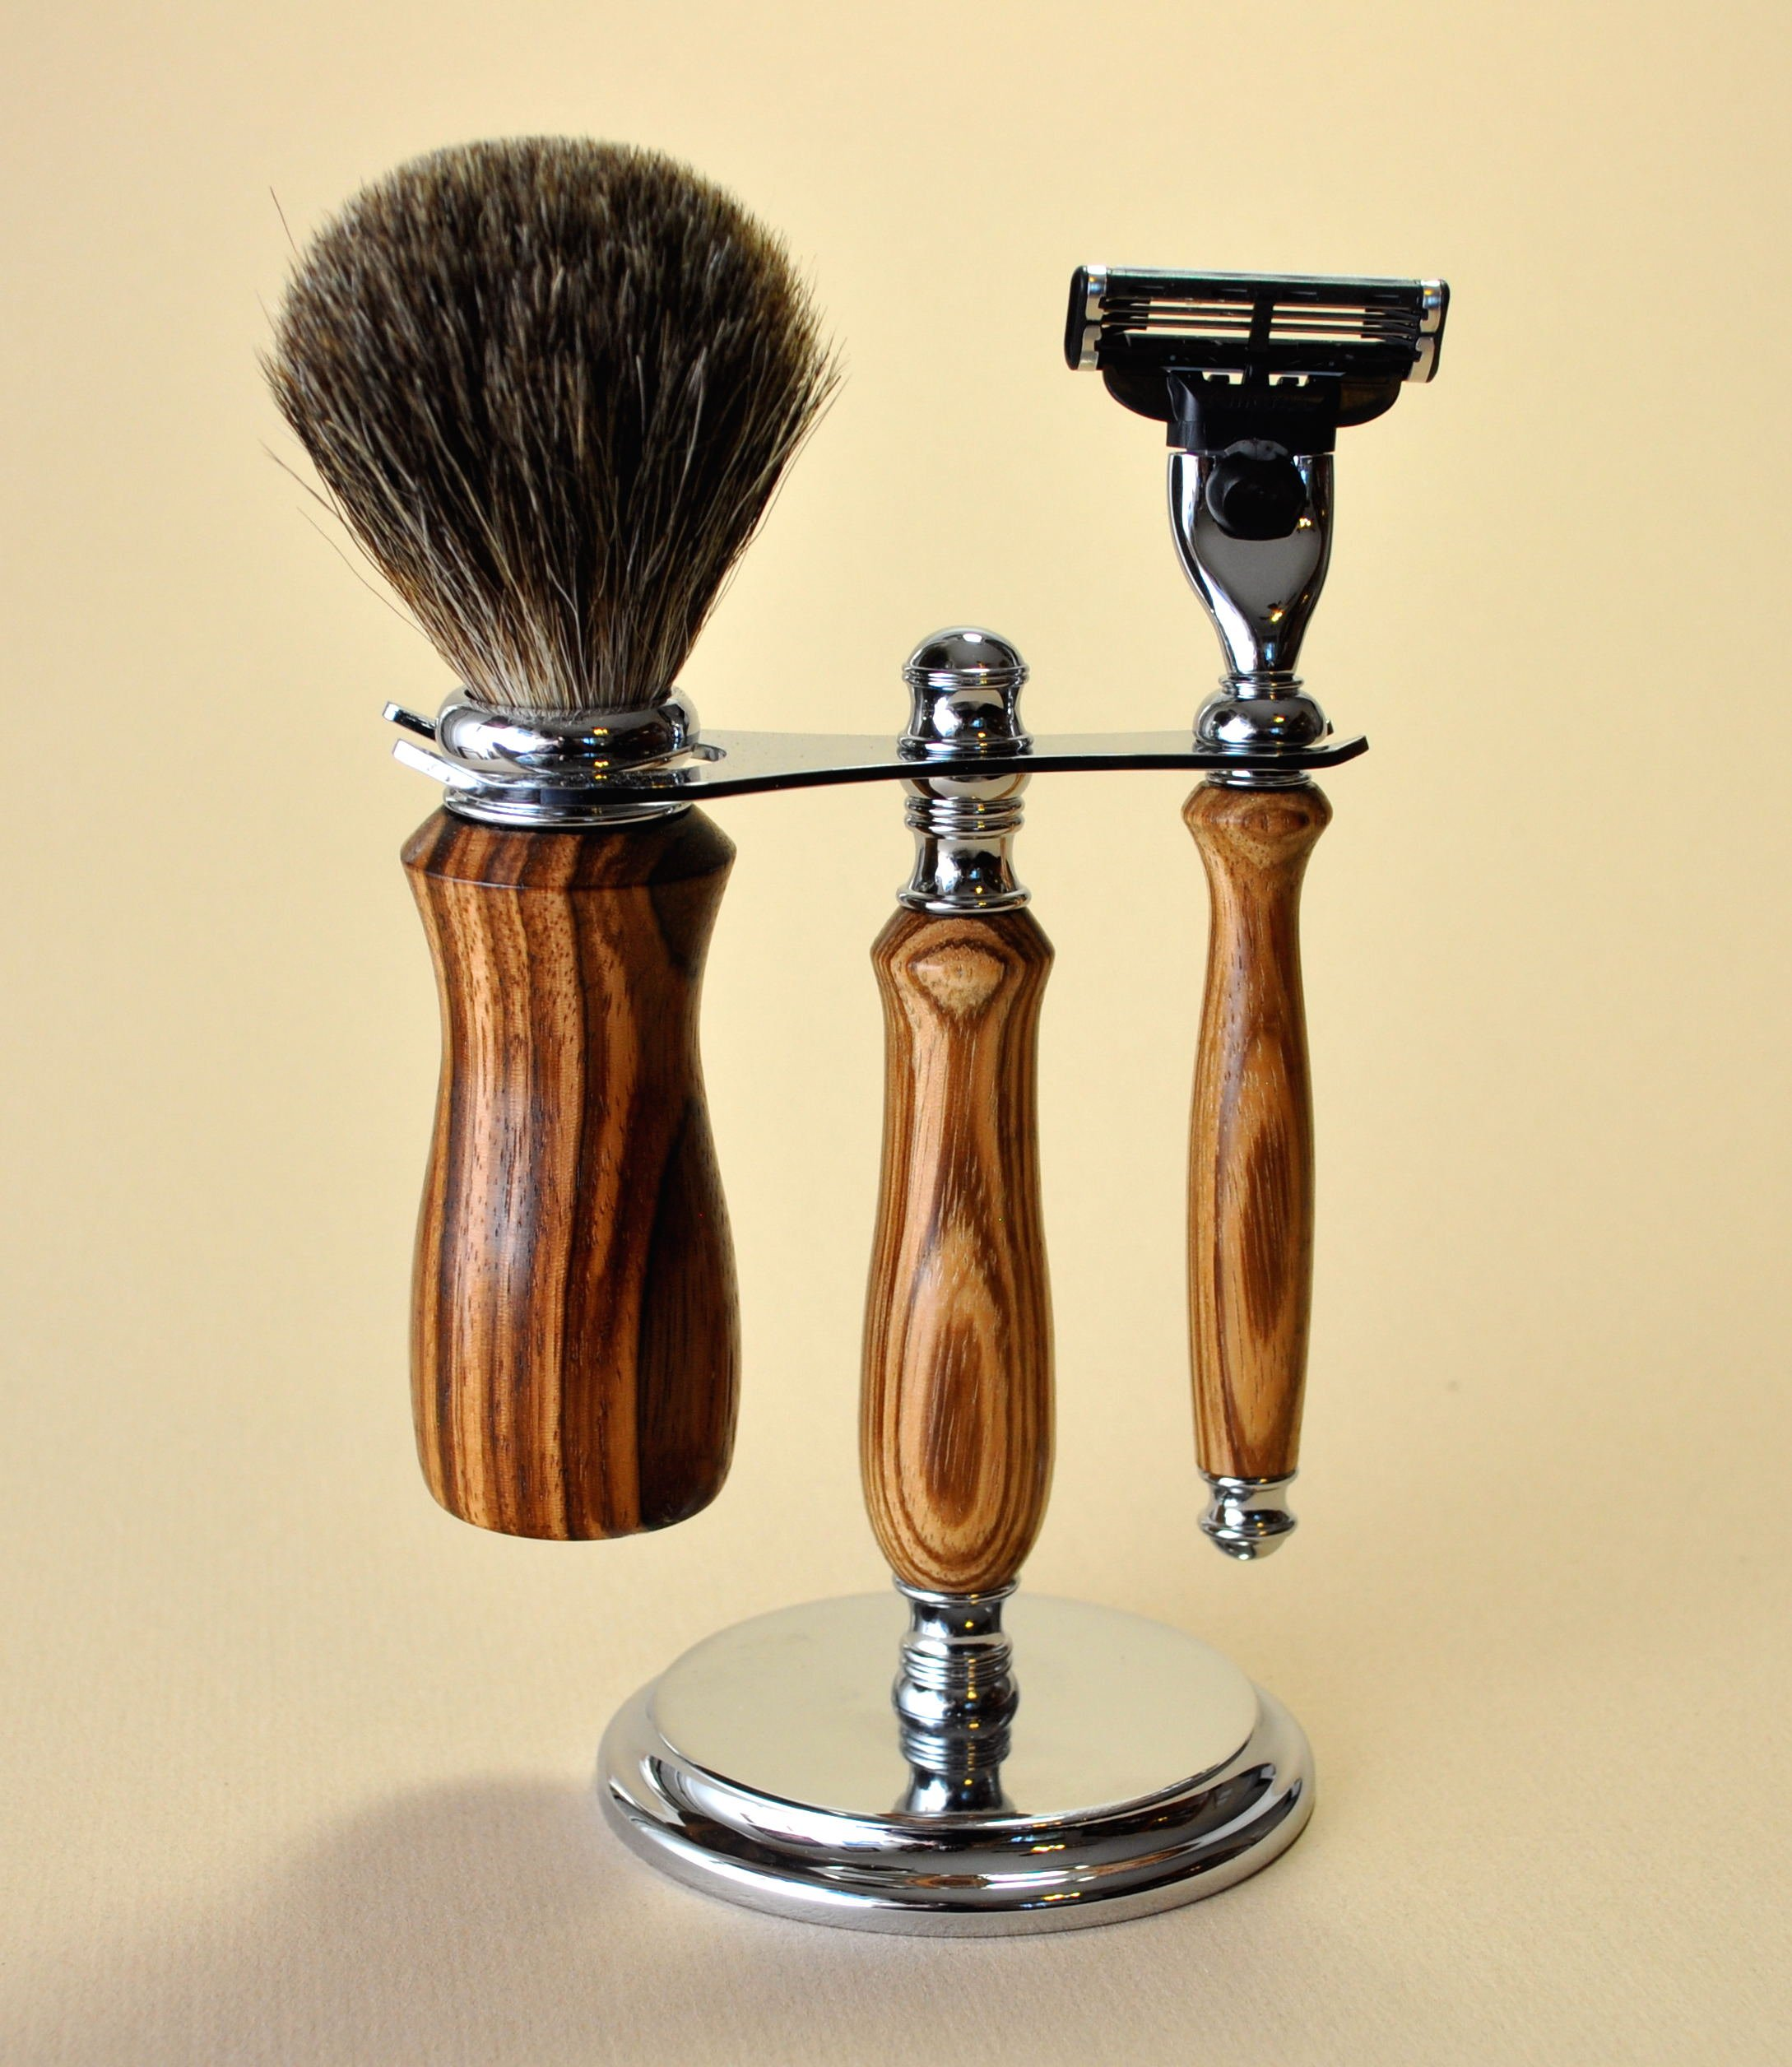 Mach 3 Razor and Badger Brush on Deluxe Stand, Handcrafted in Exotic Hardwood by Custom Woodcrafting